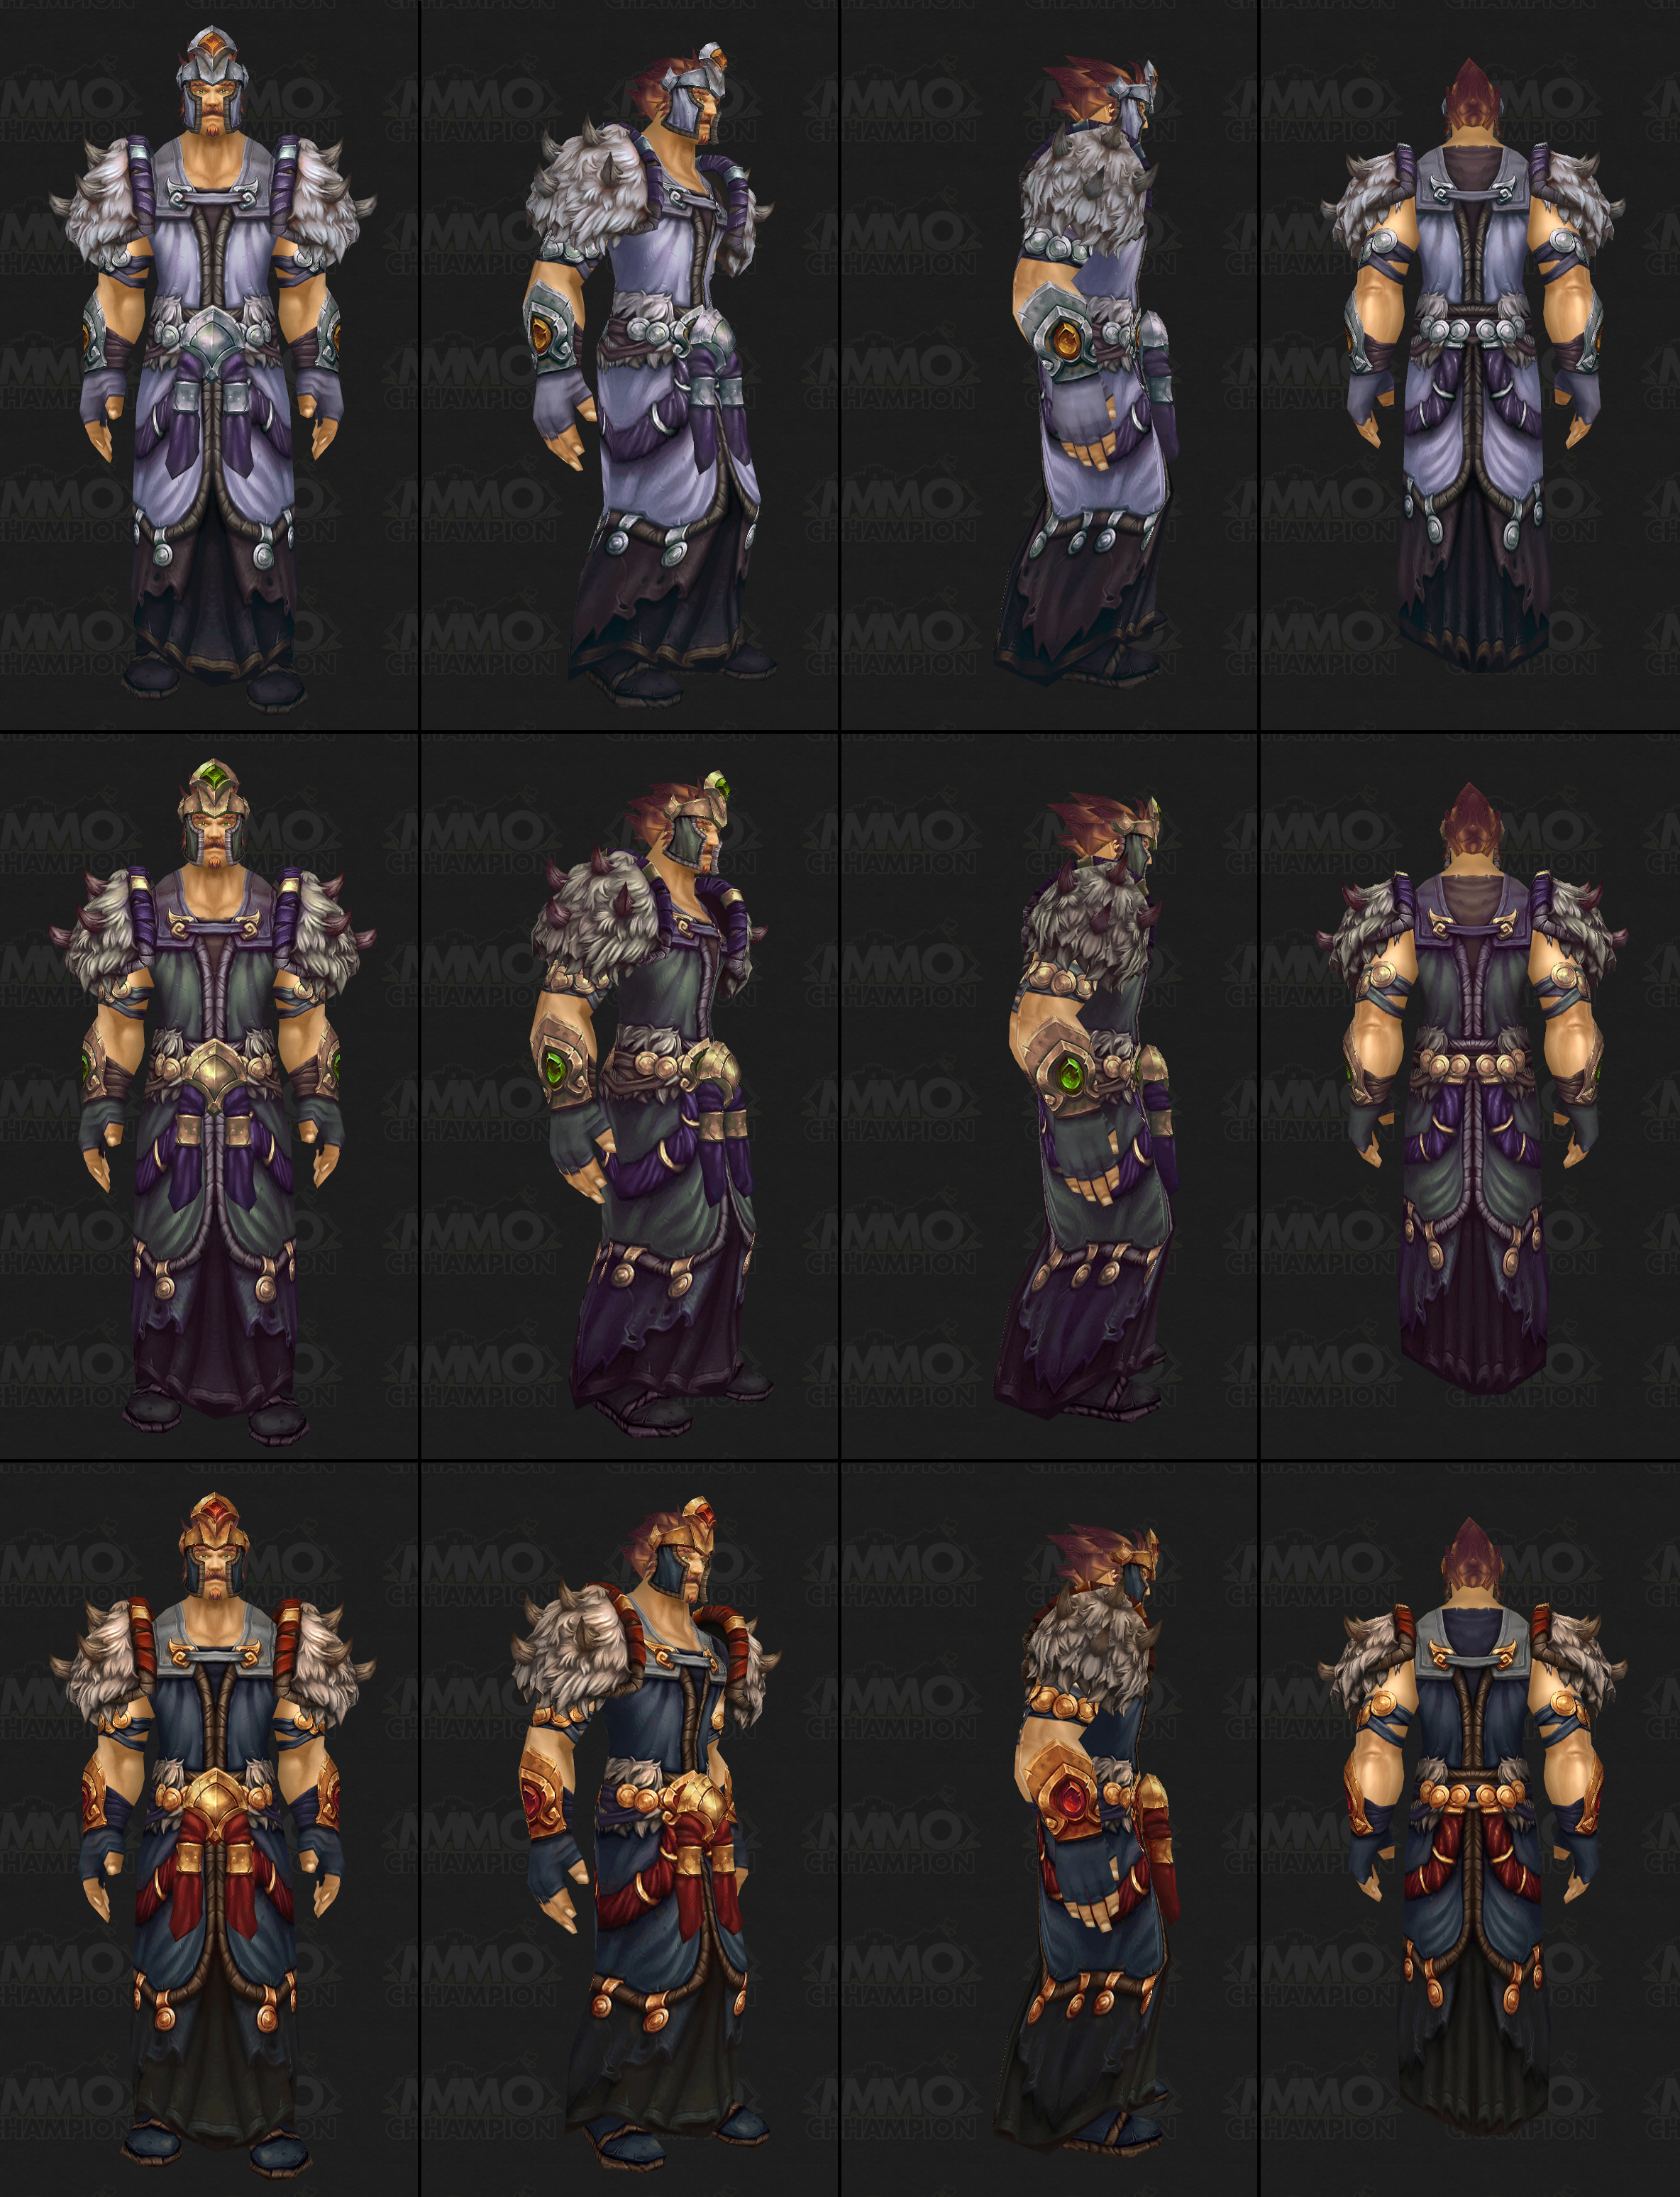 Warlords of draenor raid finder armor sets draenei guard armor set